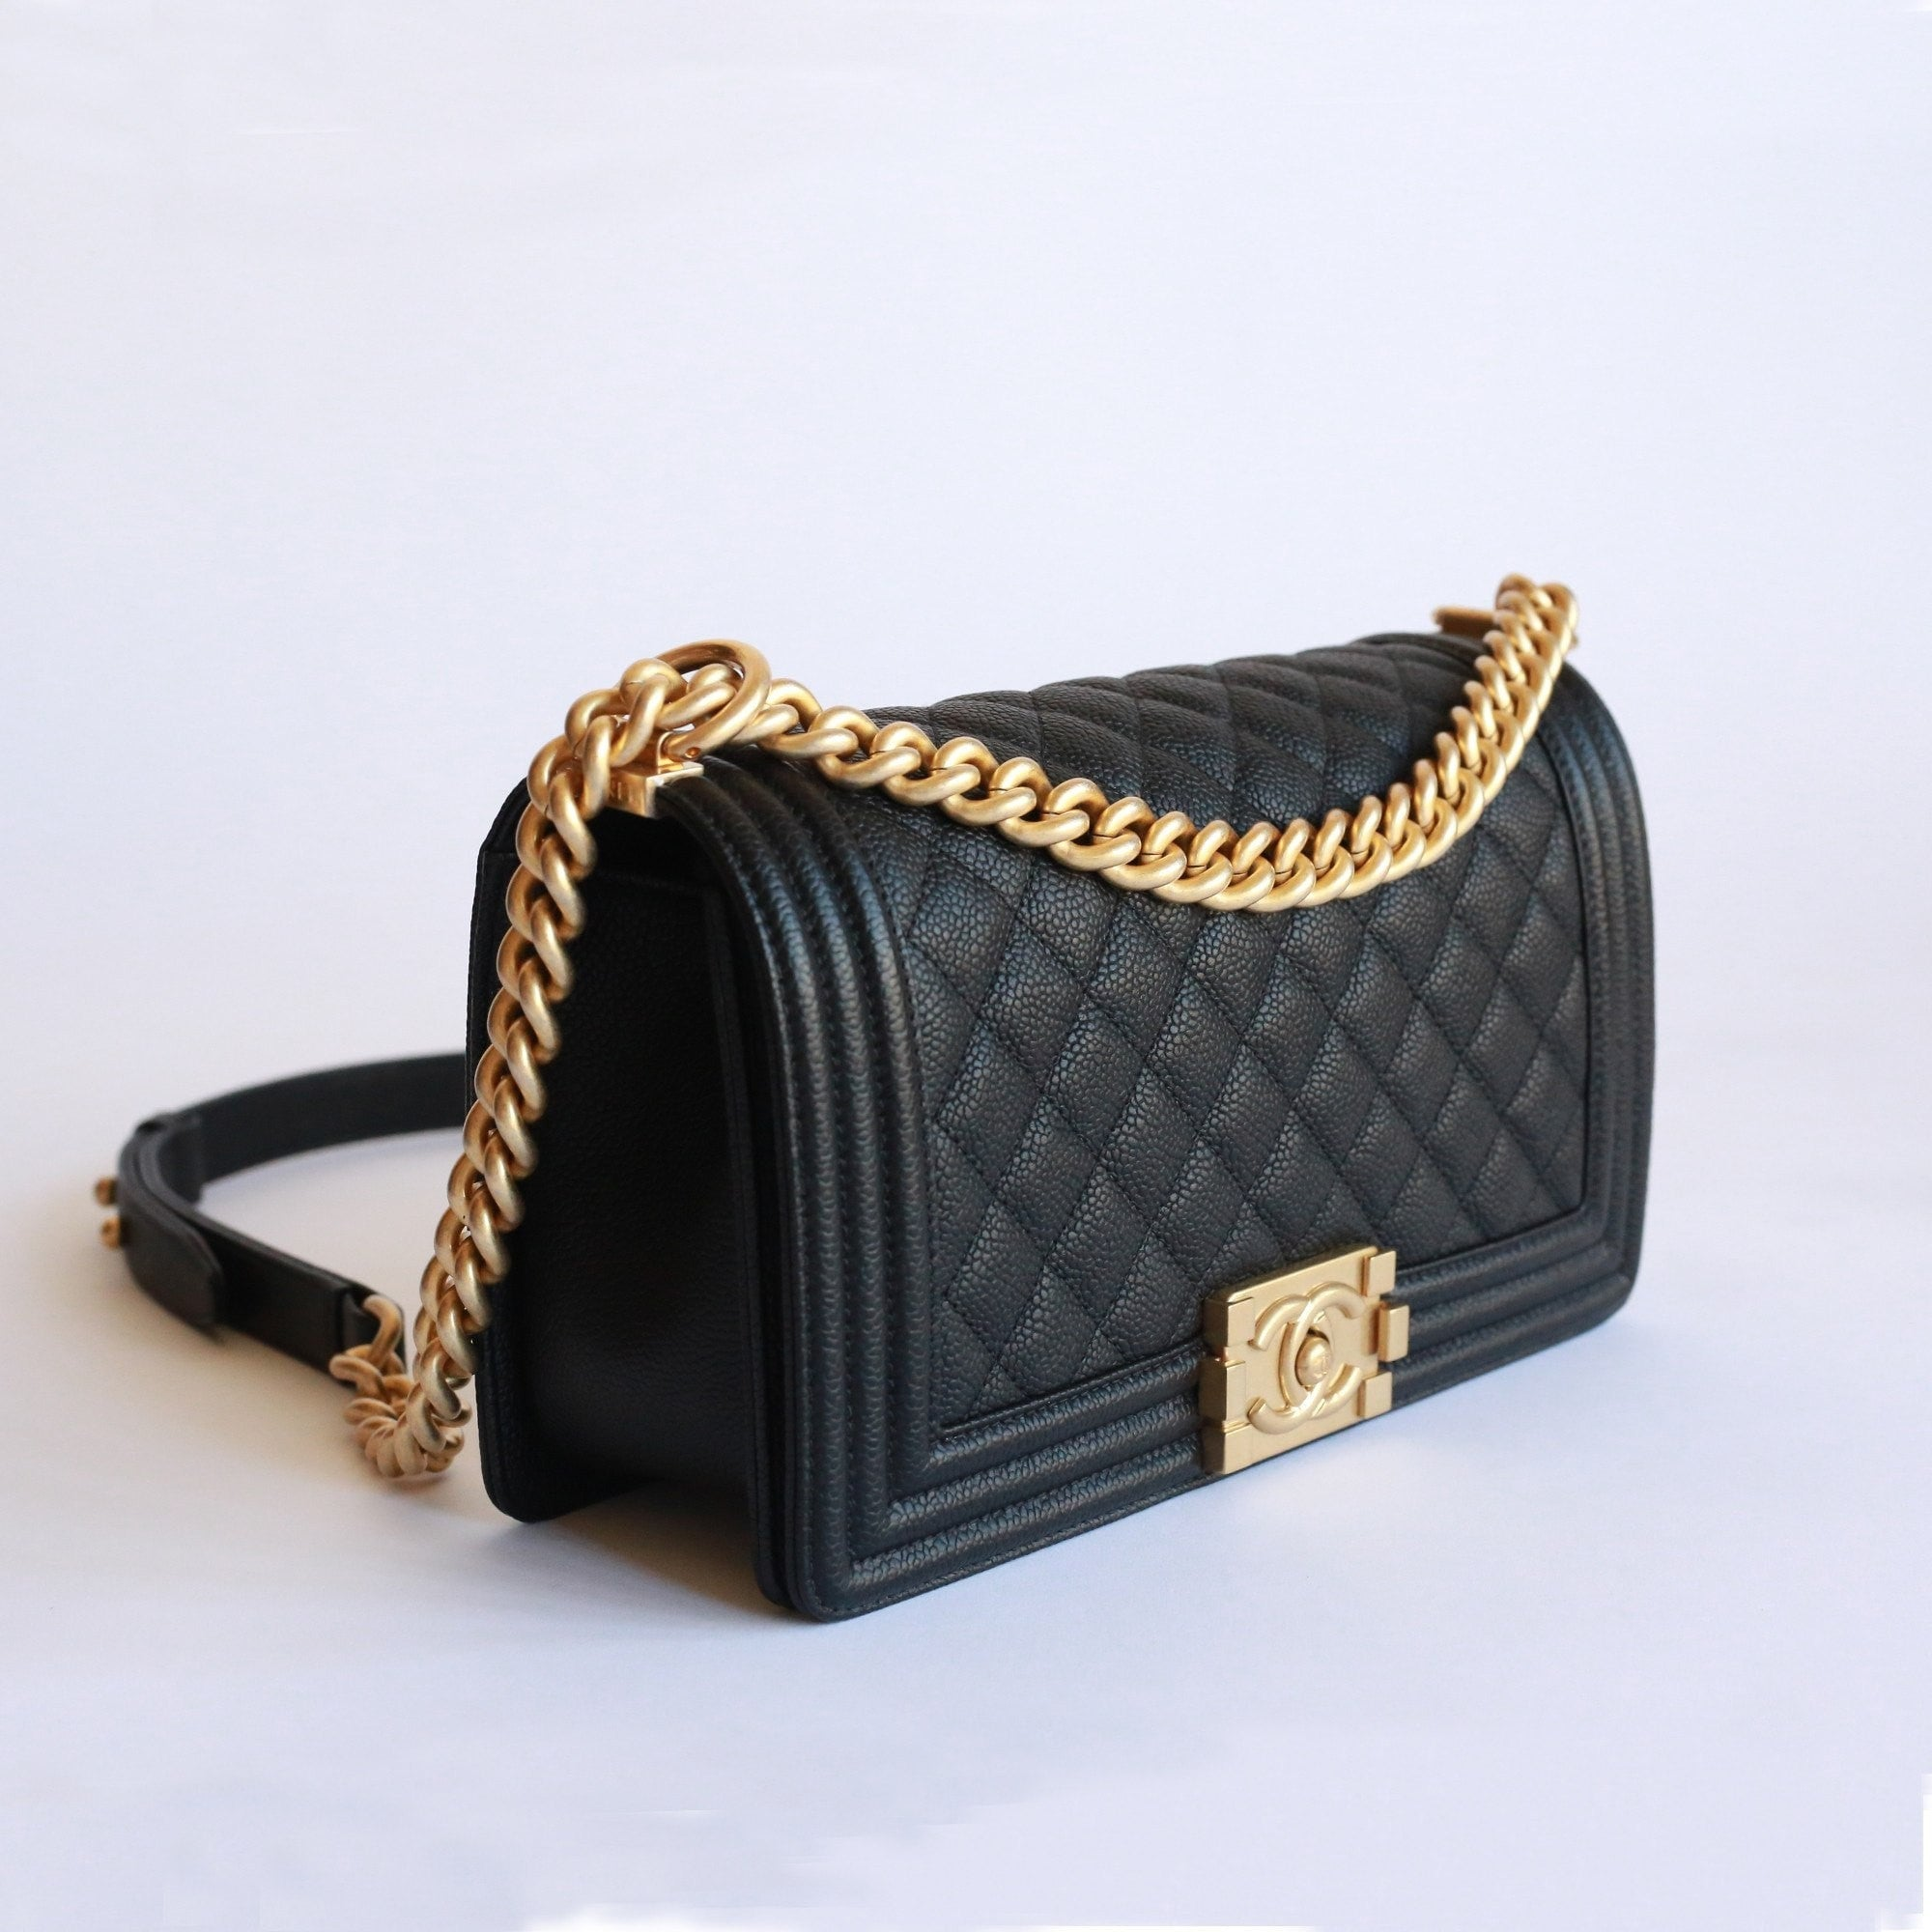 5aa704e8d194 Chanel Boy Bag Caviar Old Medium | Stanford Center for Opportunity ...